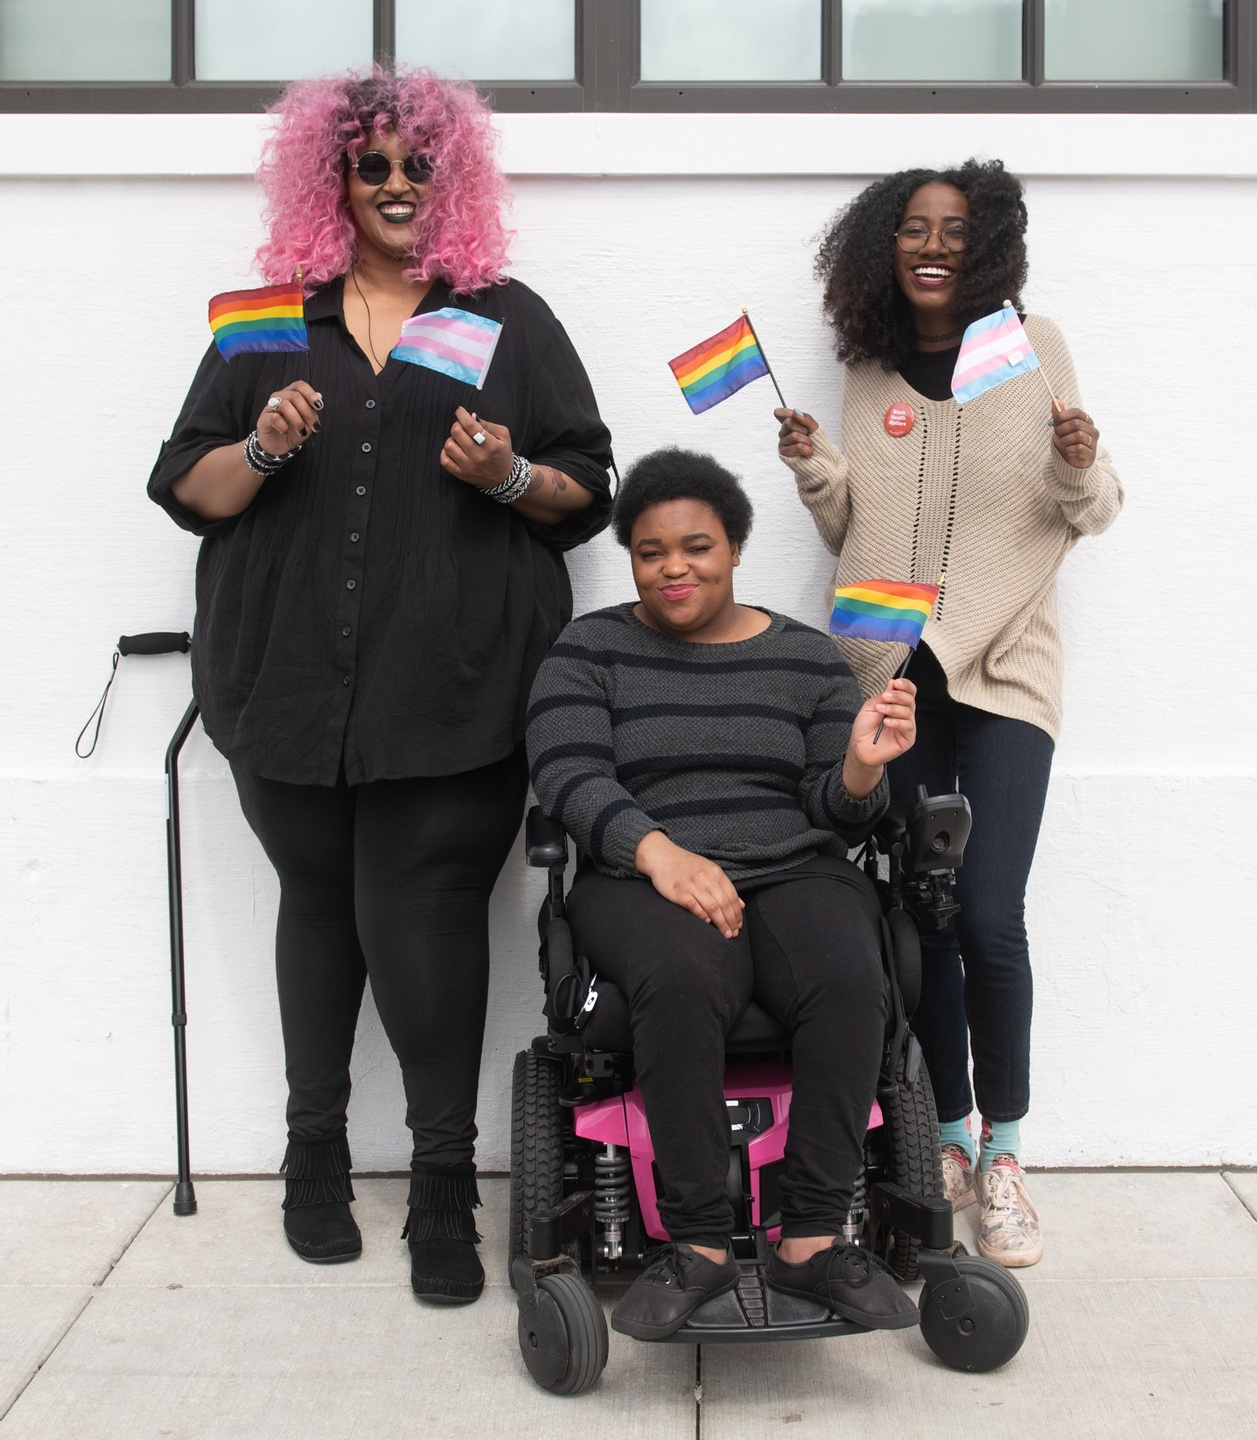 Three black people holding trans and gay flags. One has pink hair and a cane, one has a pink powerchair.